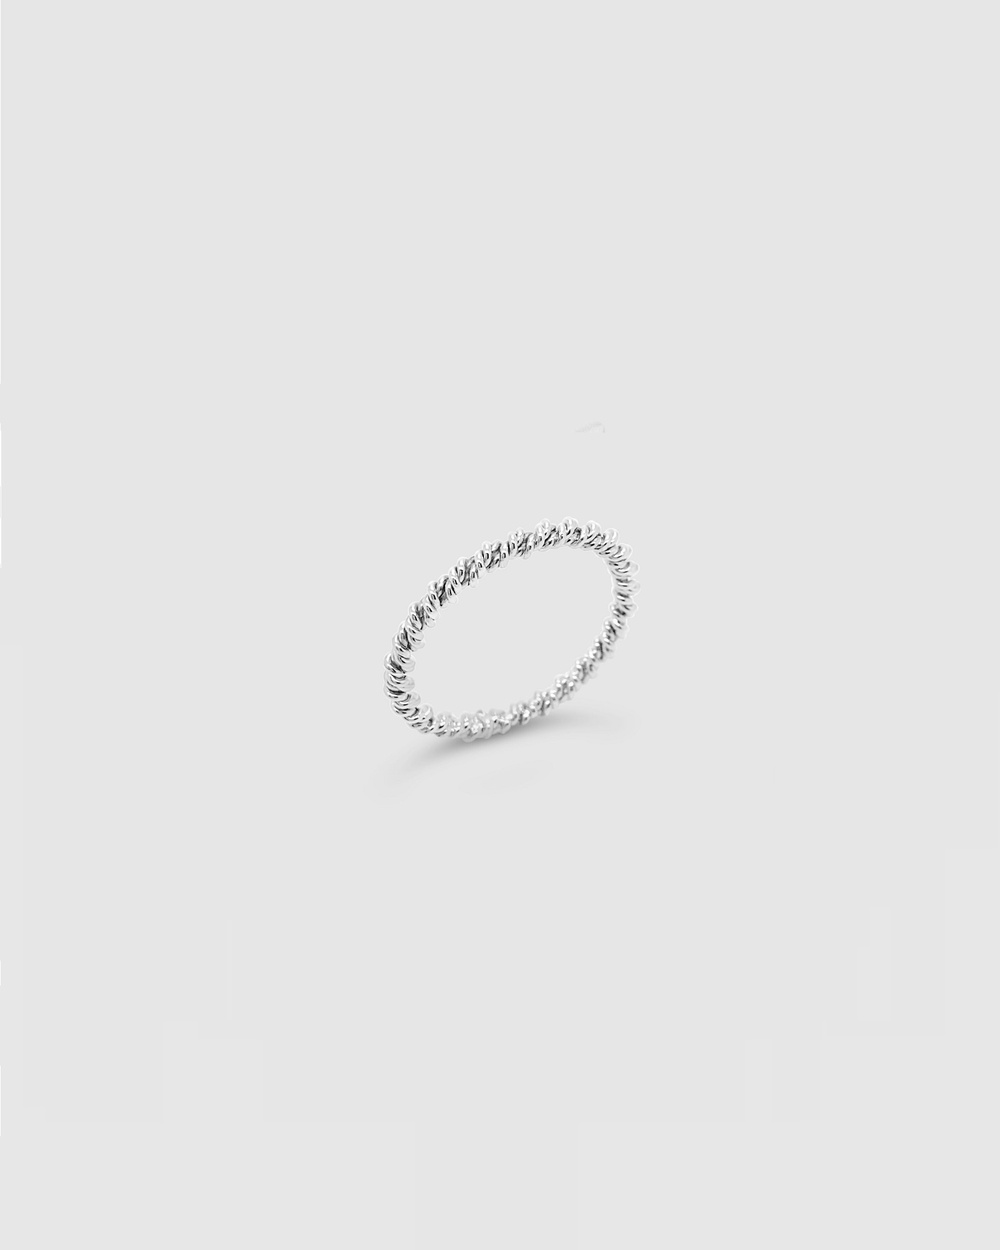 Ichu French Rope Ring Jewellery Silver